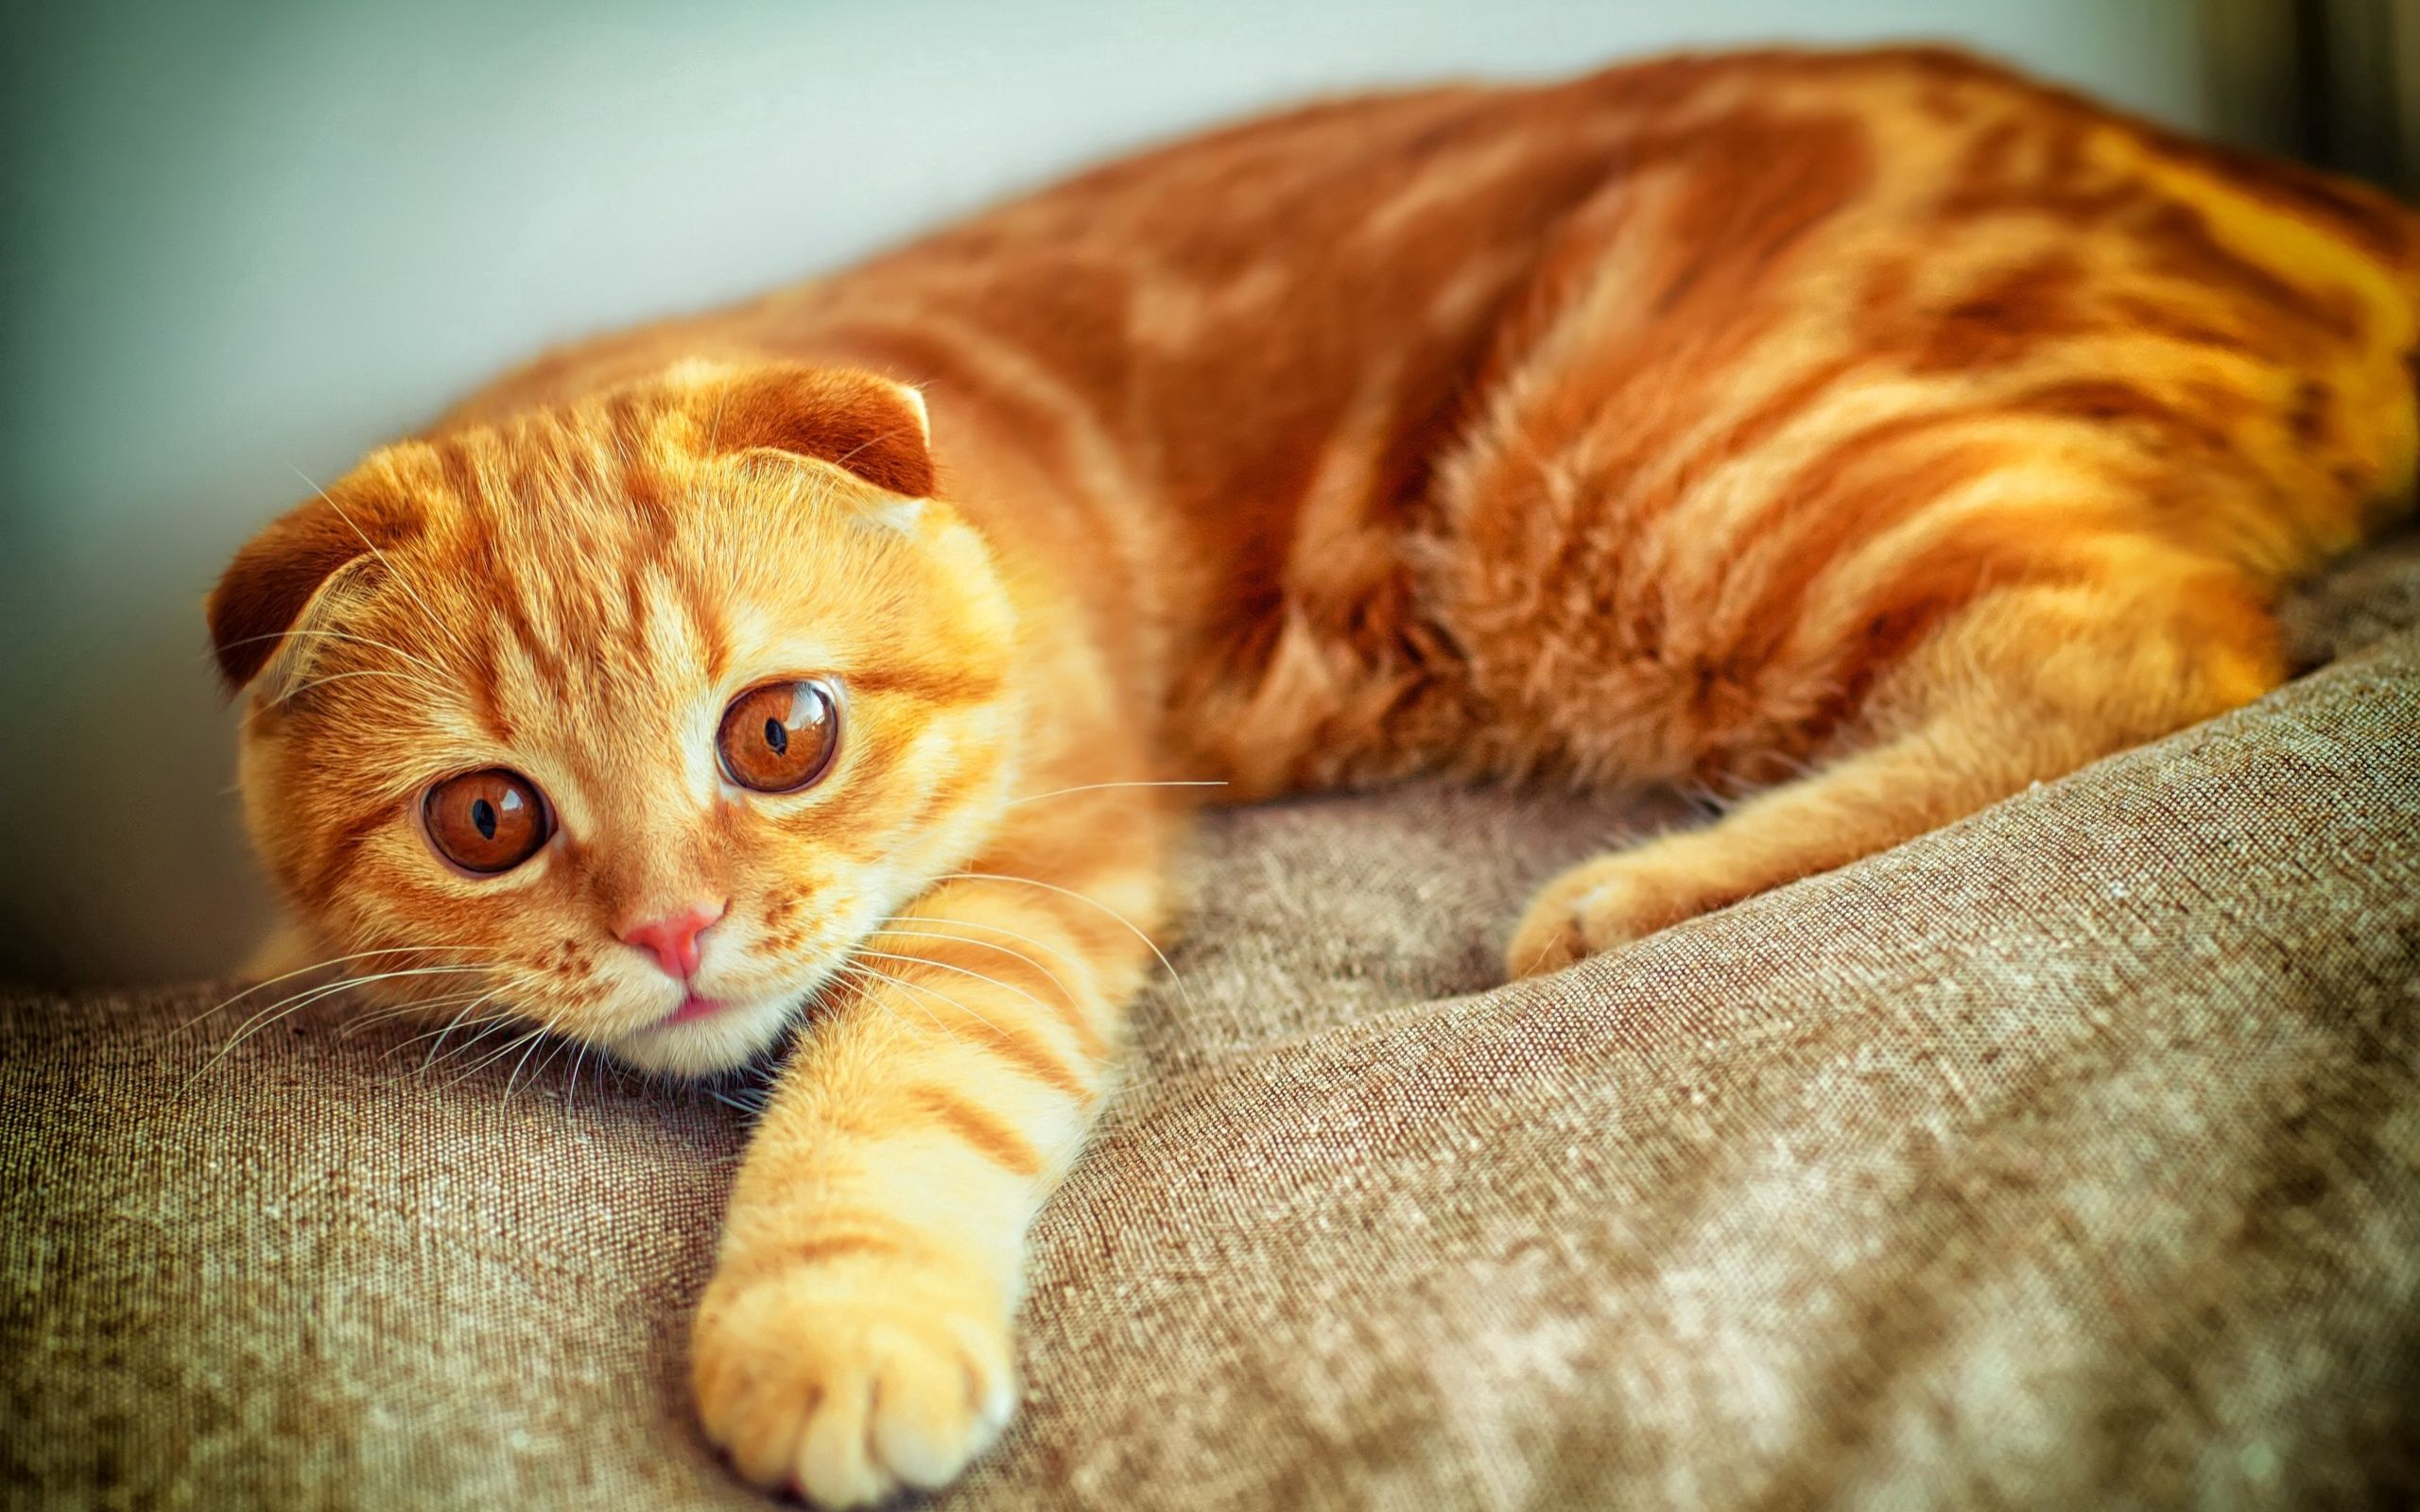 156352 download wallpaper Animals, Portrait, Playing, Plays, Paw, Redhead, Cat screensavers and pictures for free